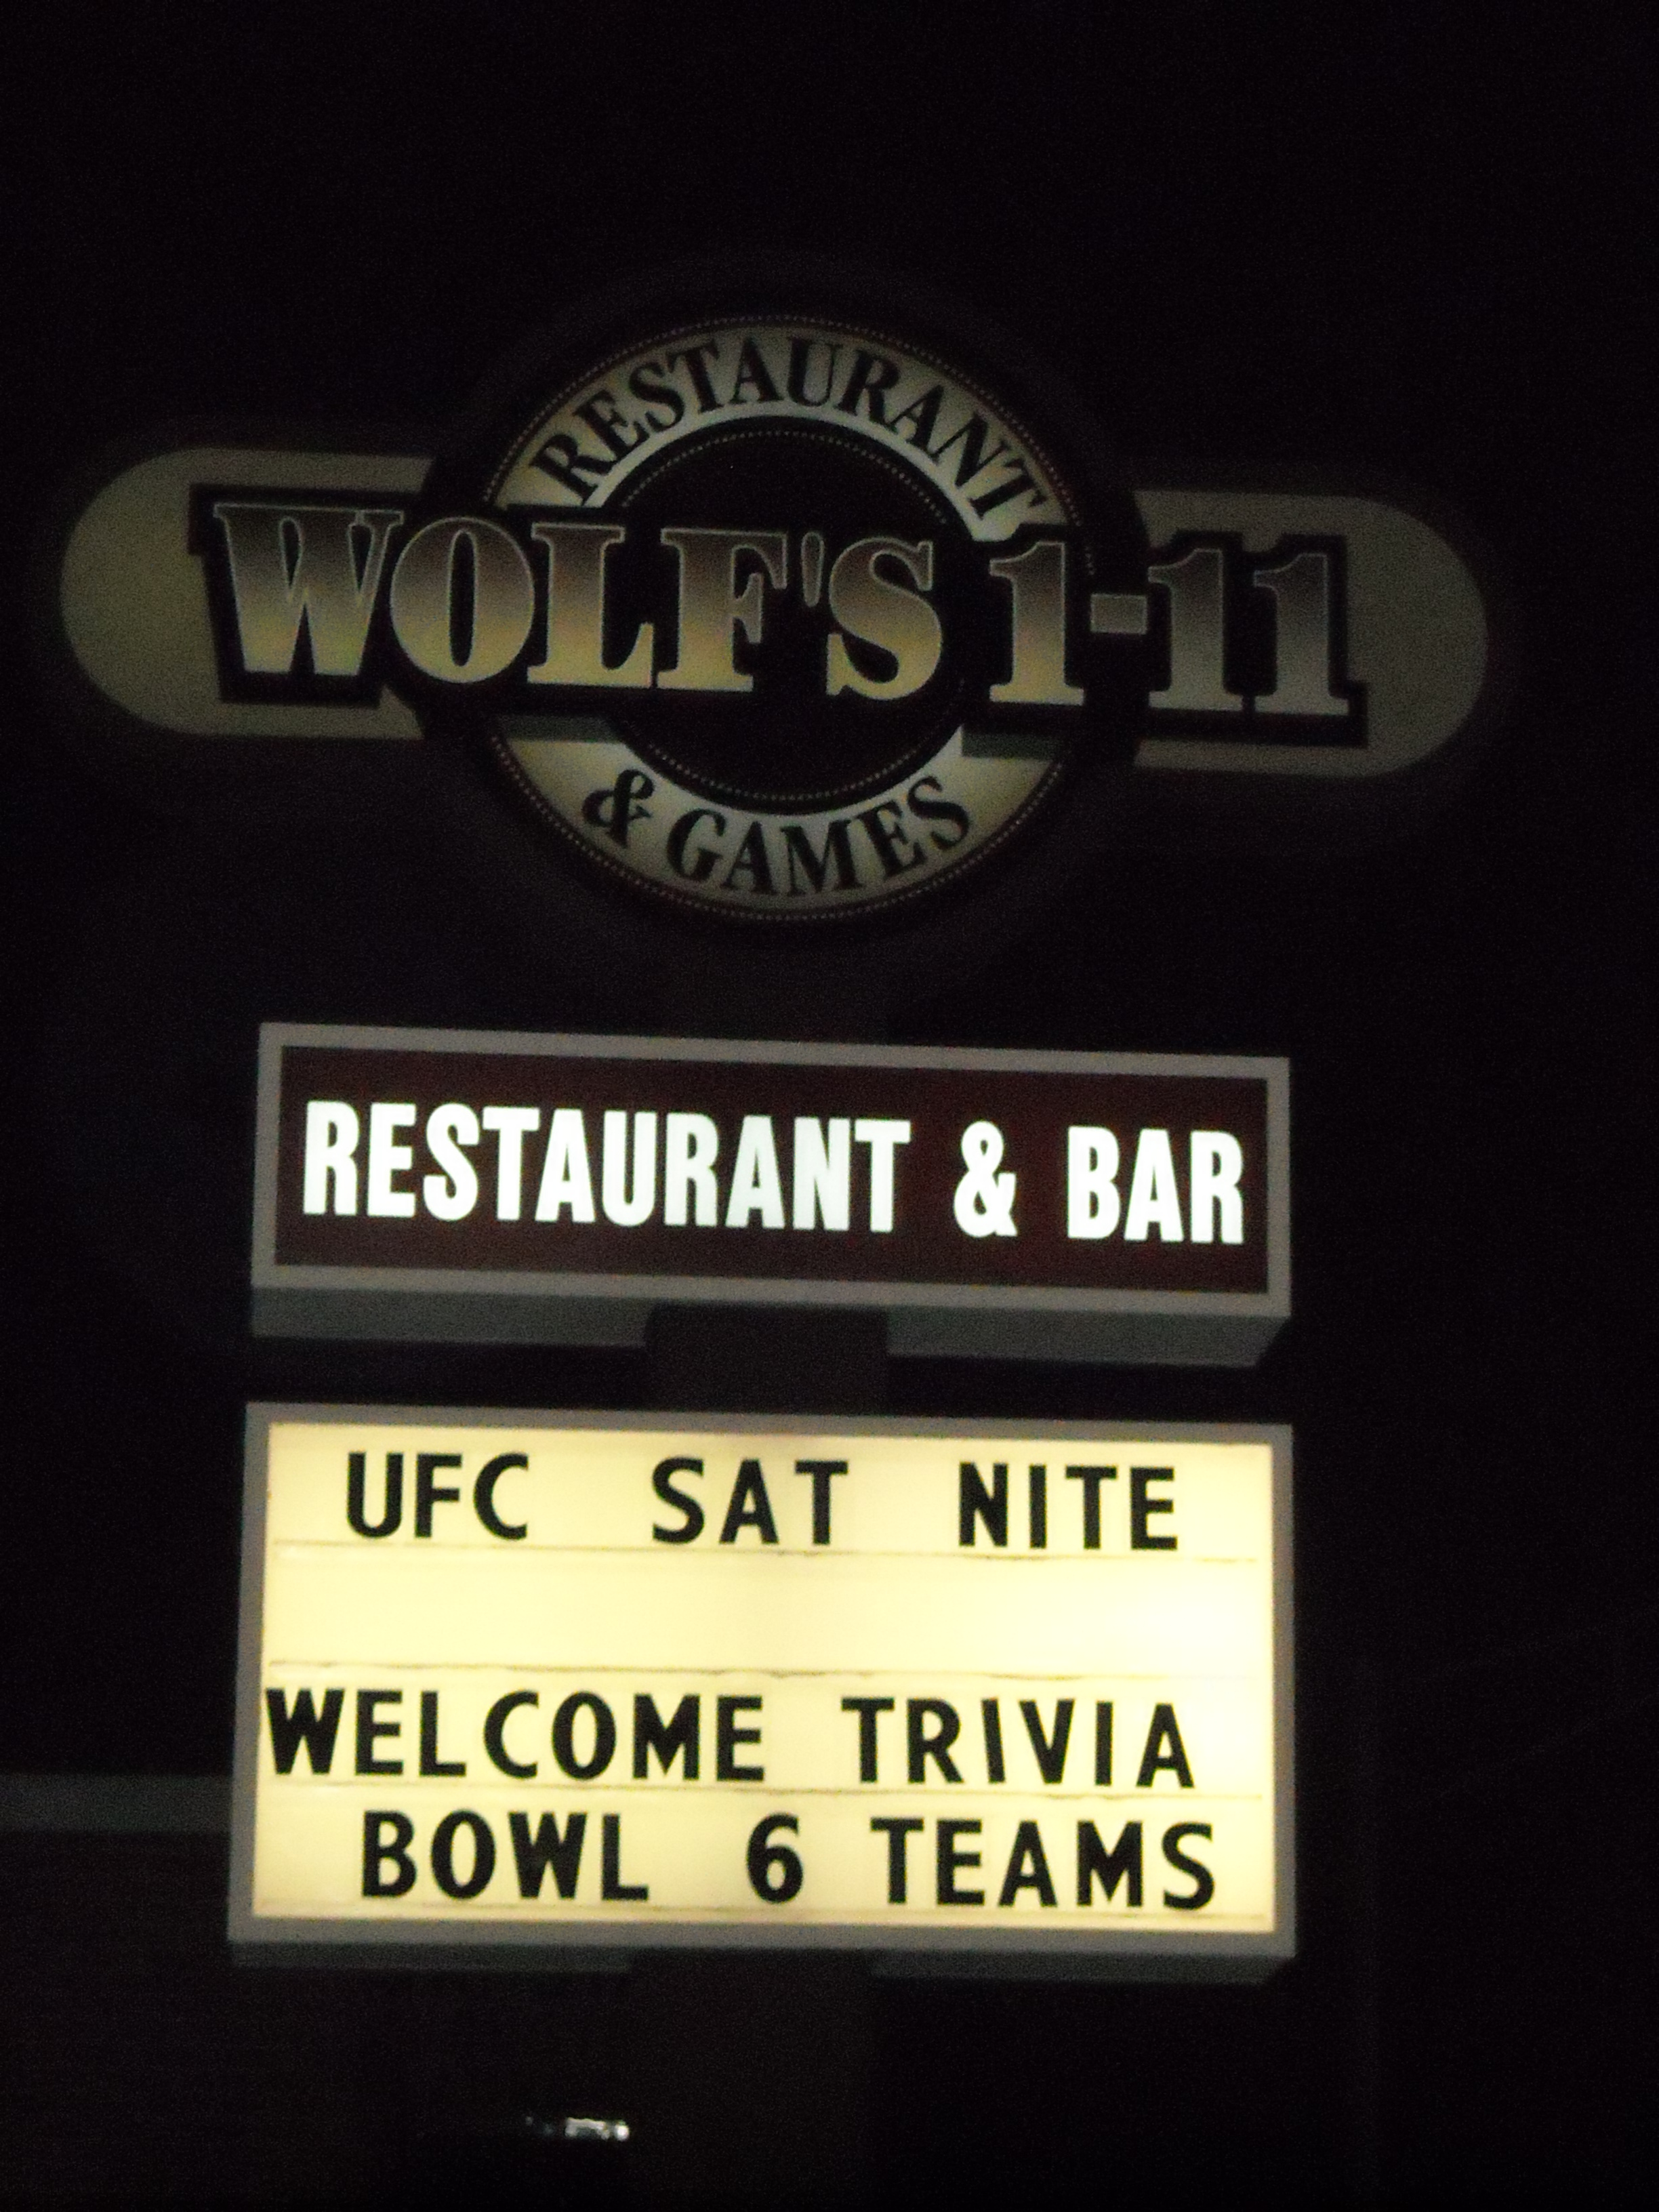 Trivia Bowl 6 marquee outside Wolf's 1-11.